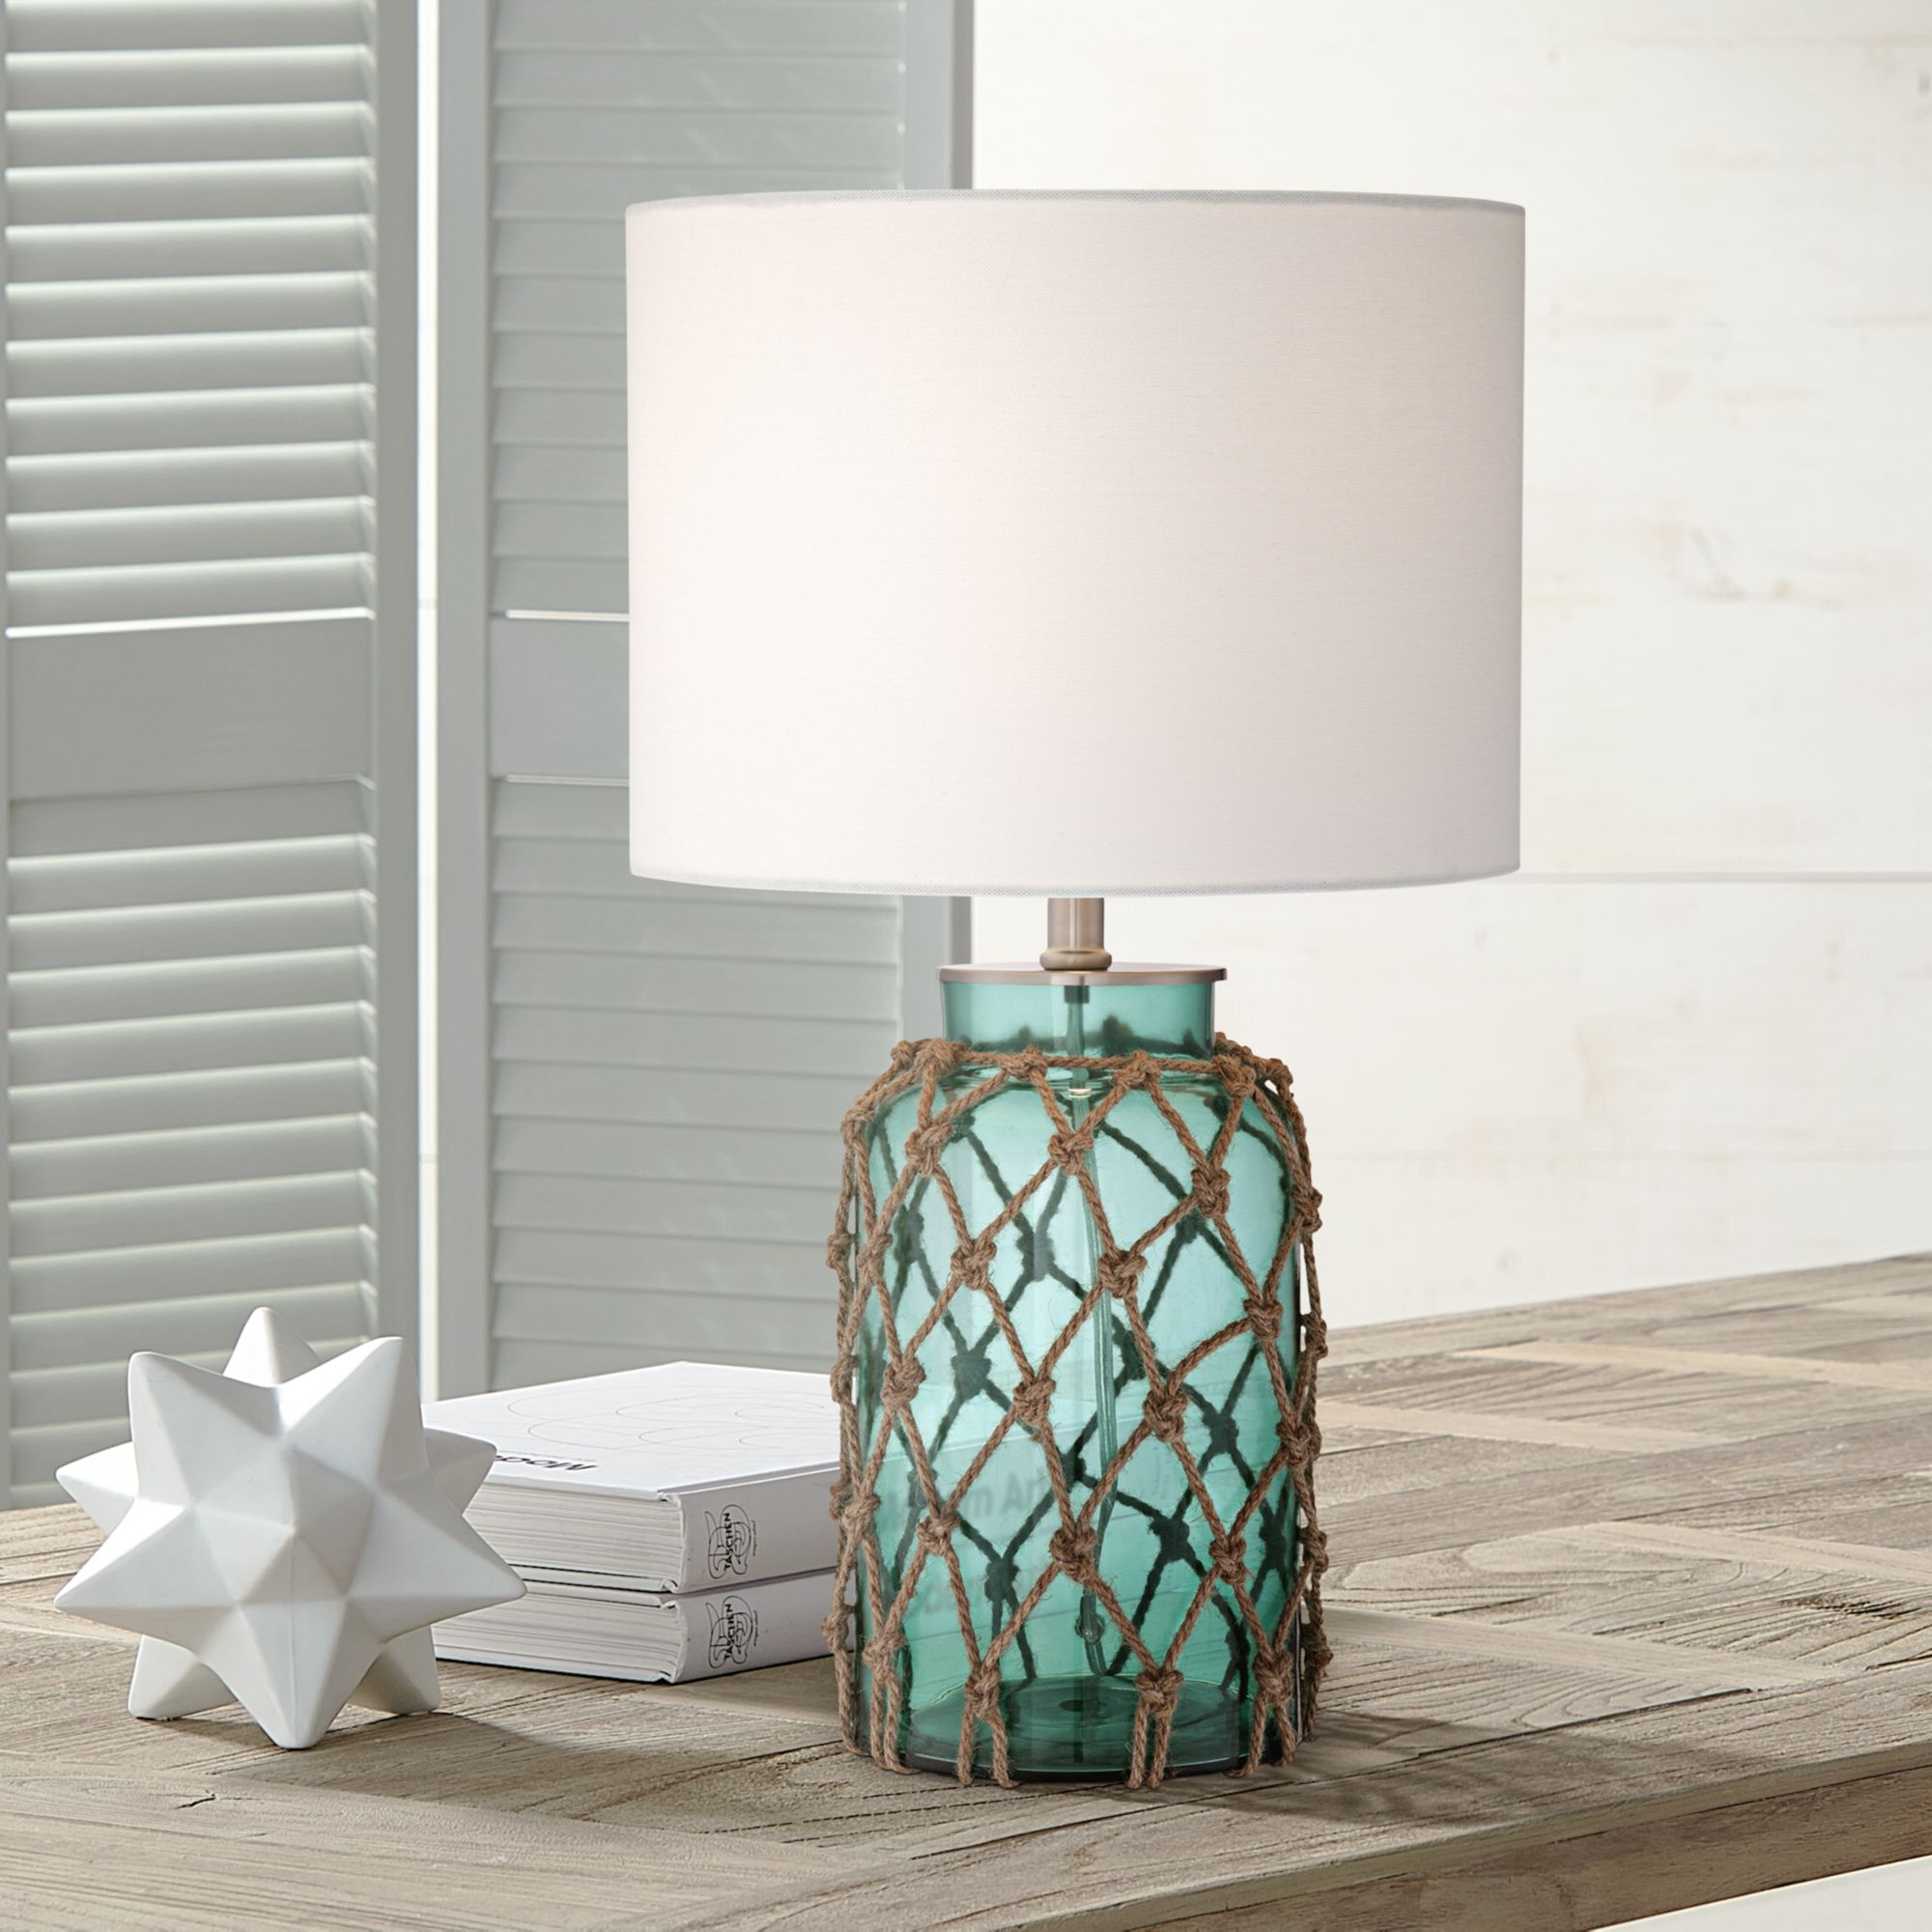 lighting nautical accent table lamp coastal blue green glass rope off white drum shade for living room family bedroom target side with drawer small round silver bedside ideas